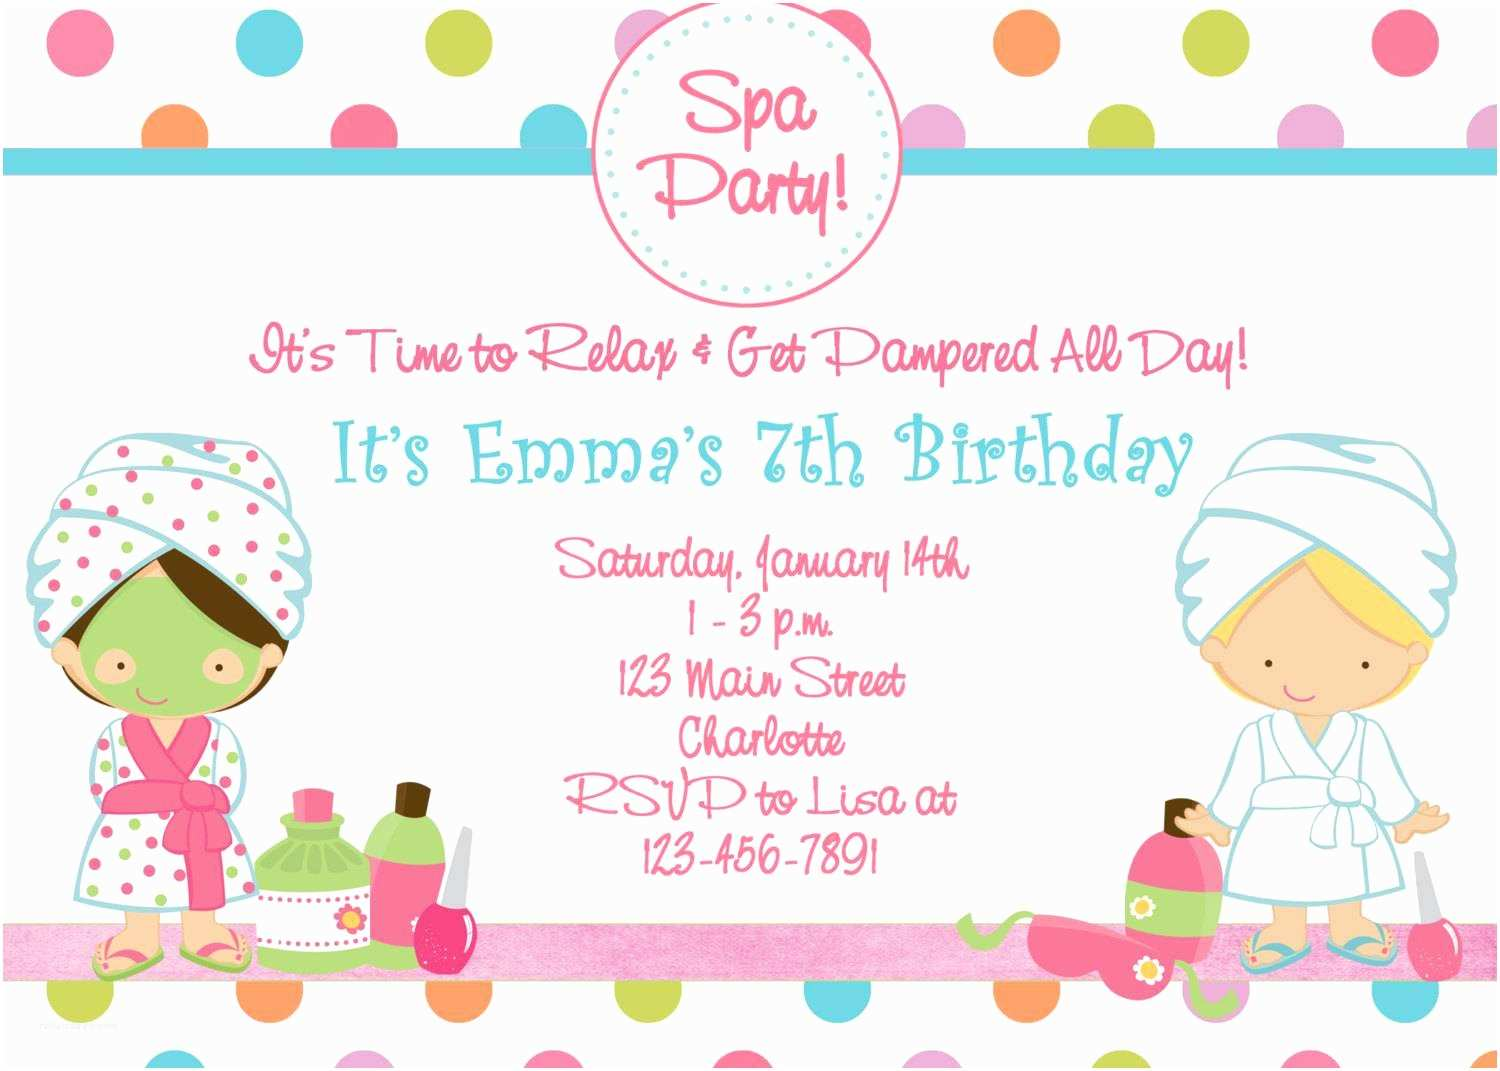 Party Invitations Online Spa Birthday Party Invitations